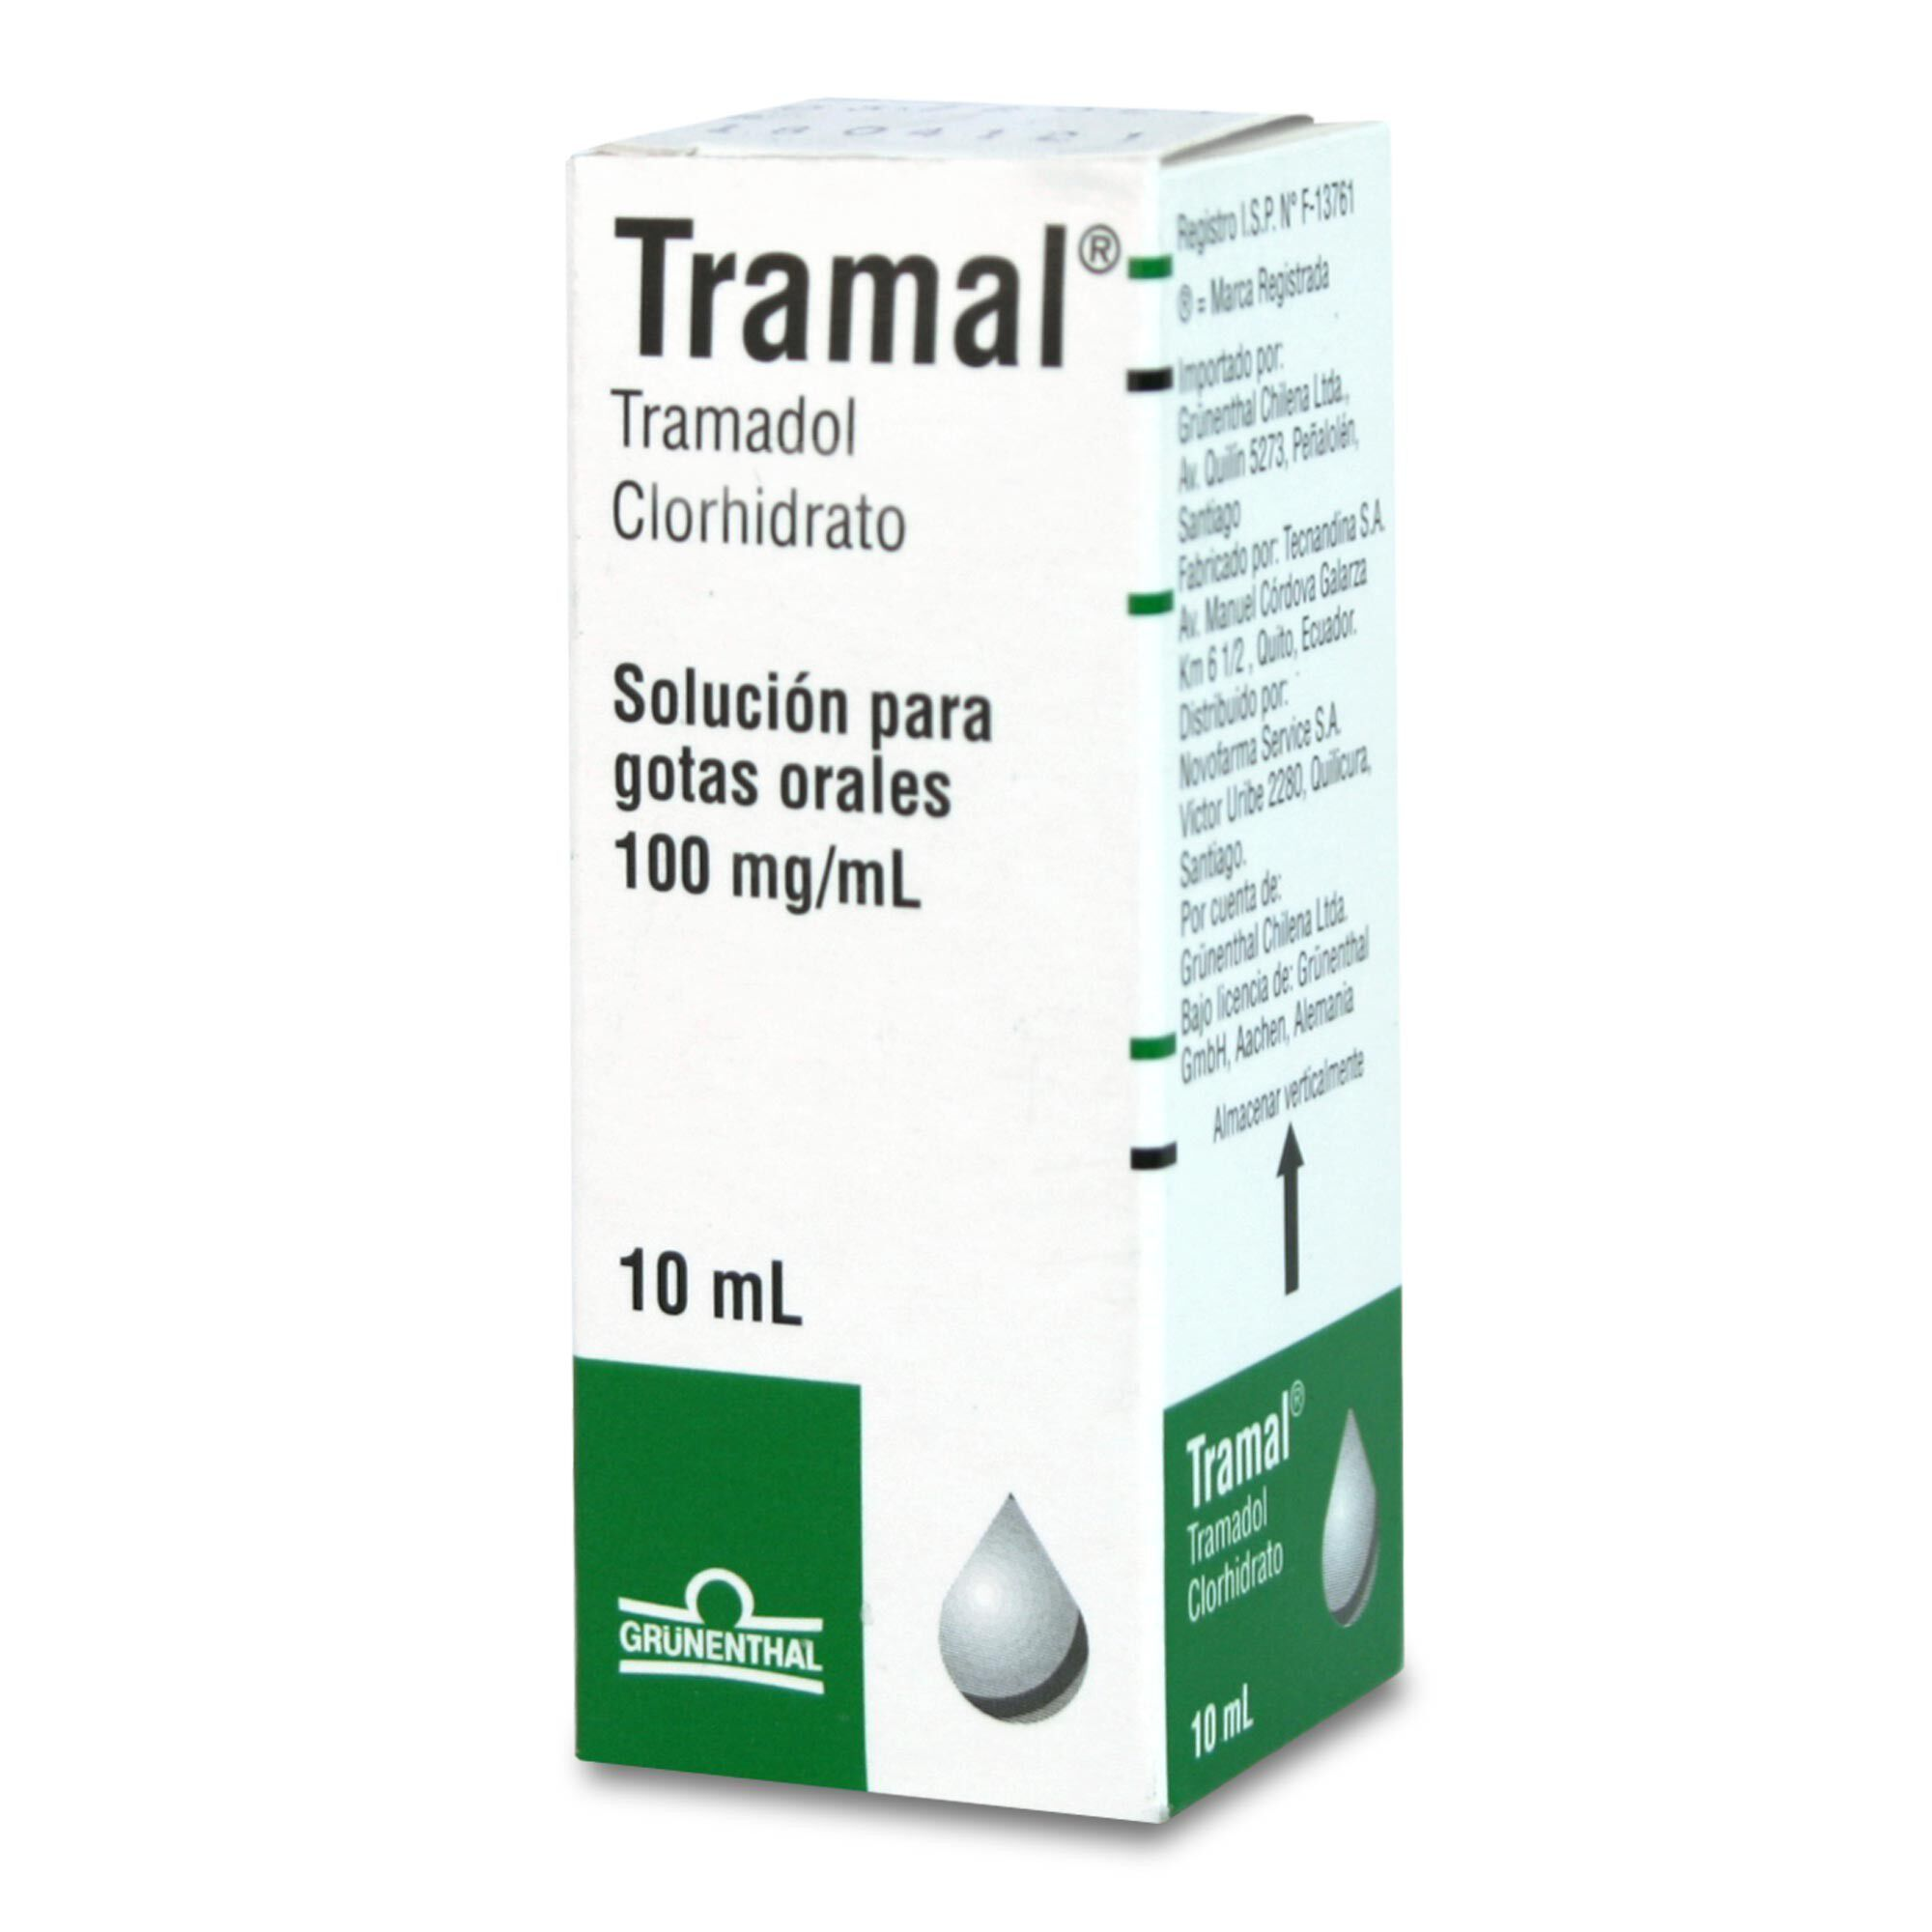 Ivermectin tablets for humans in uk